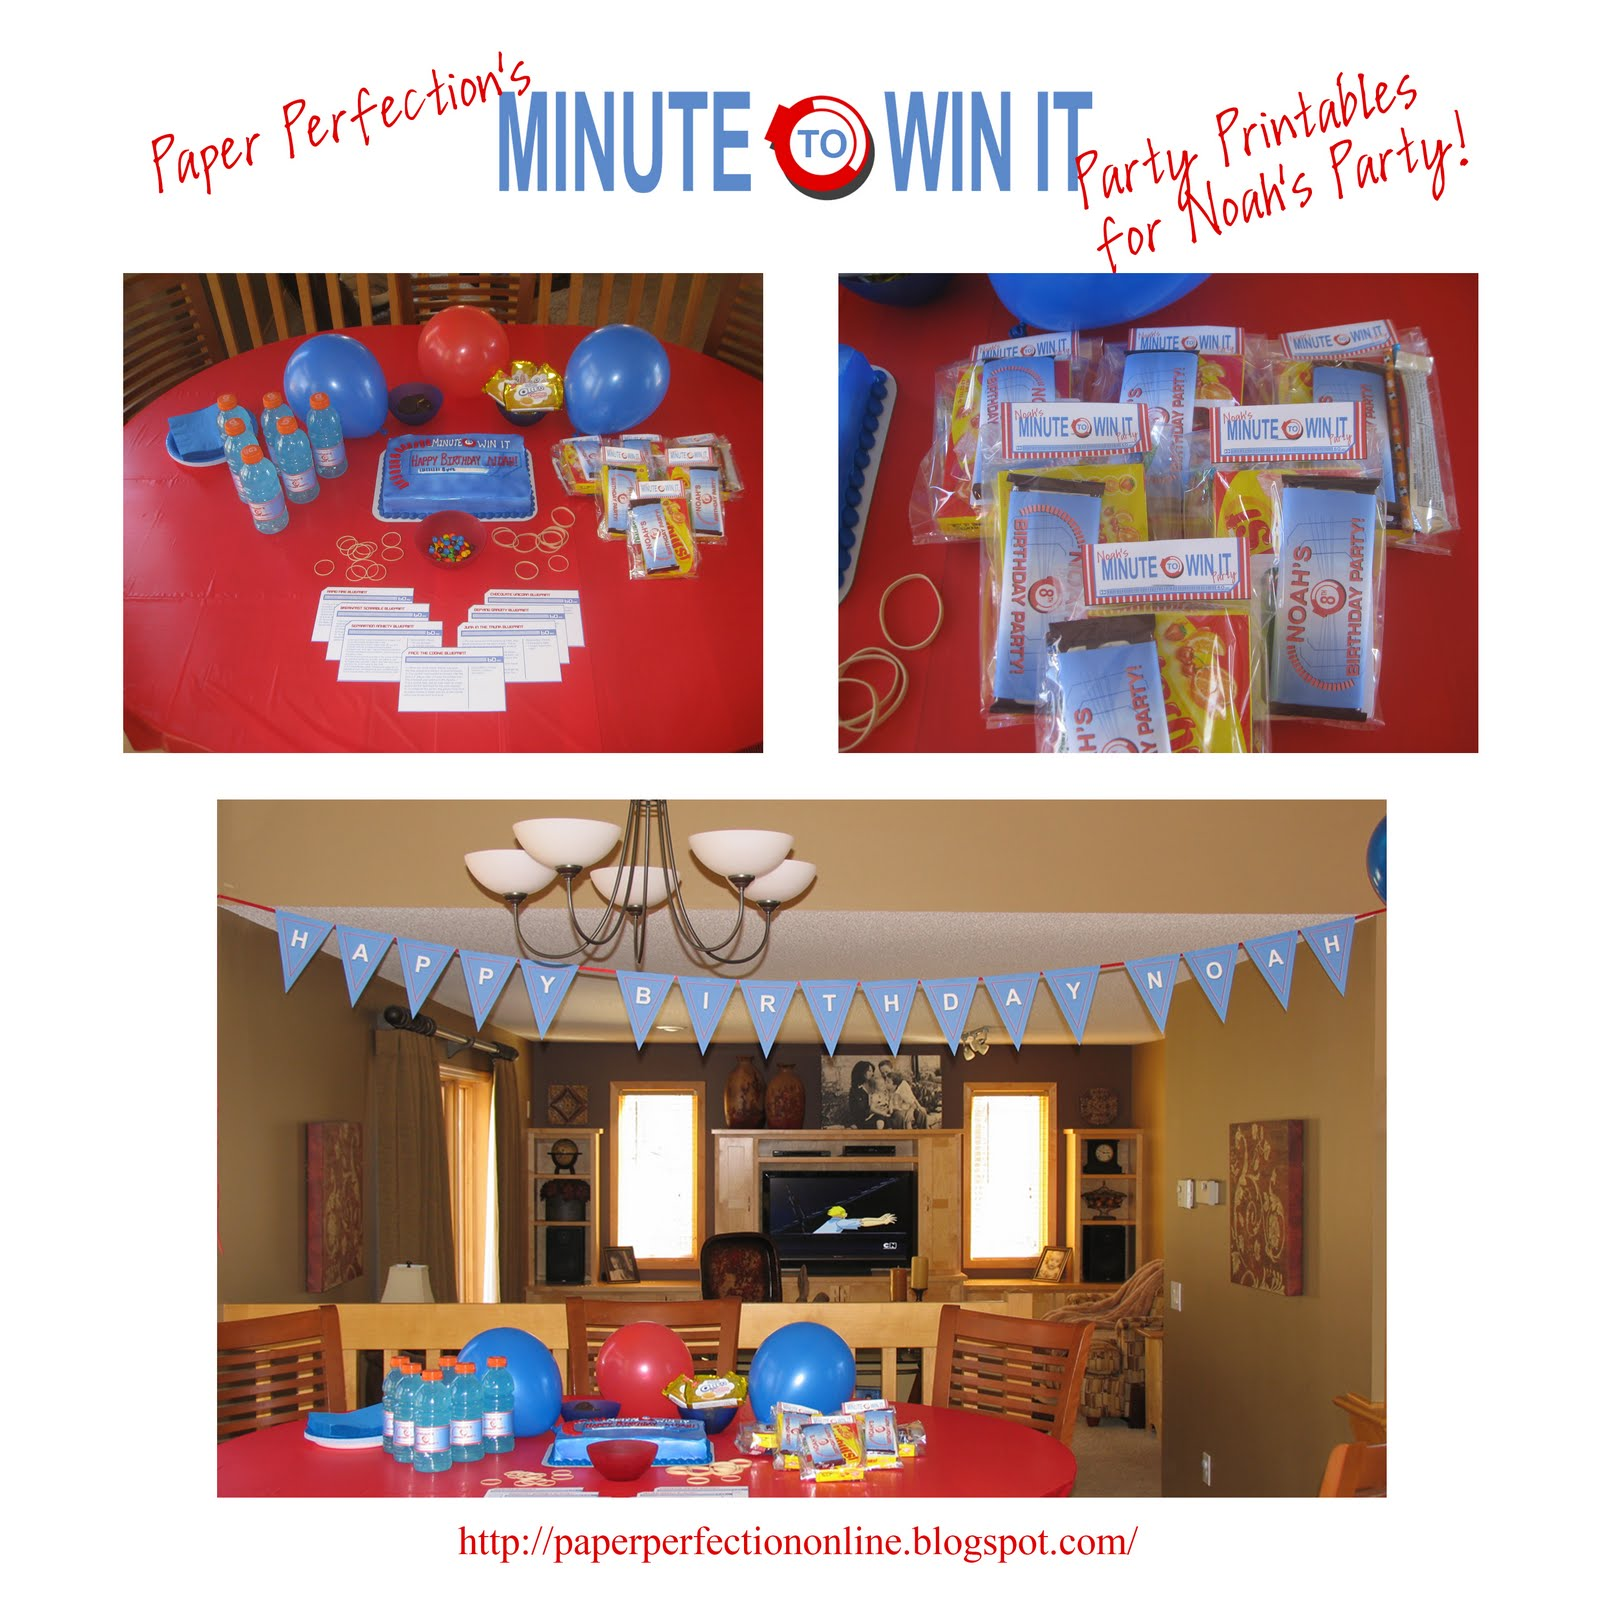 Paper Perfection Minute To Win It Party Decorations Favors